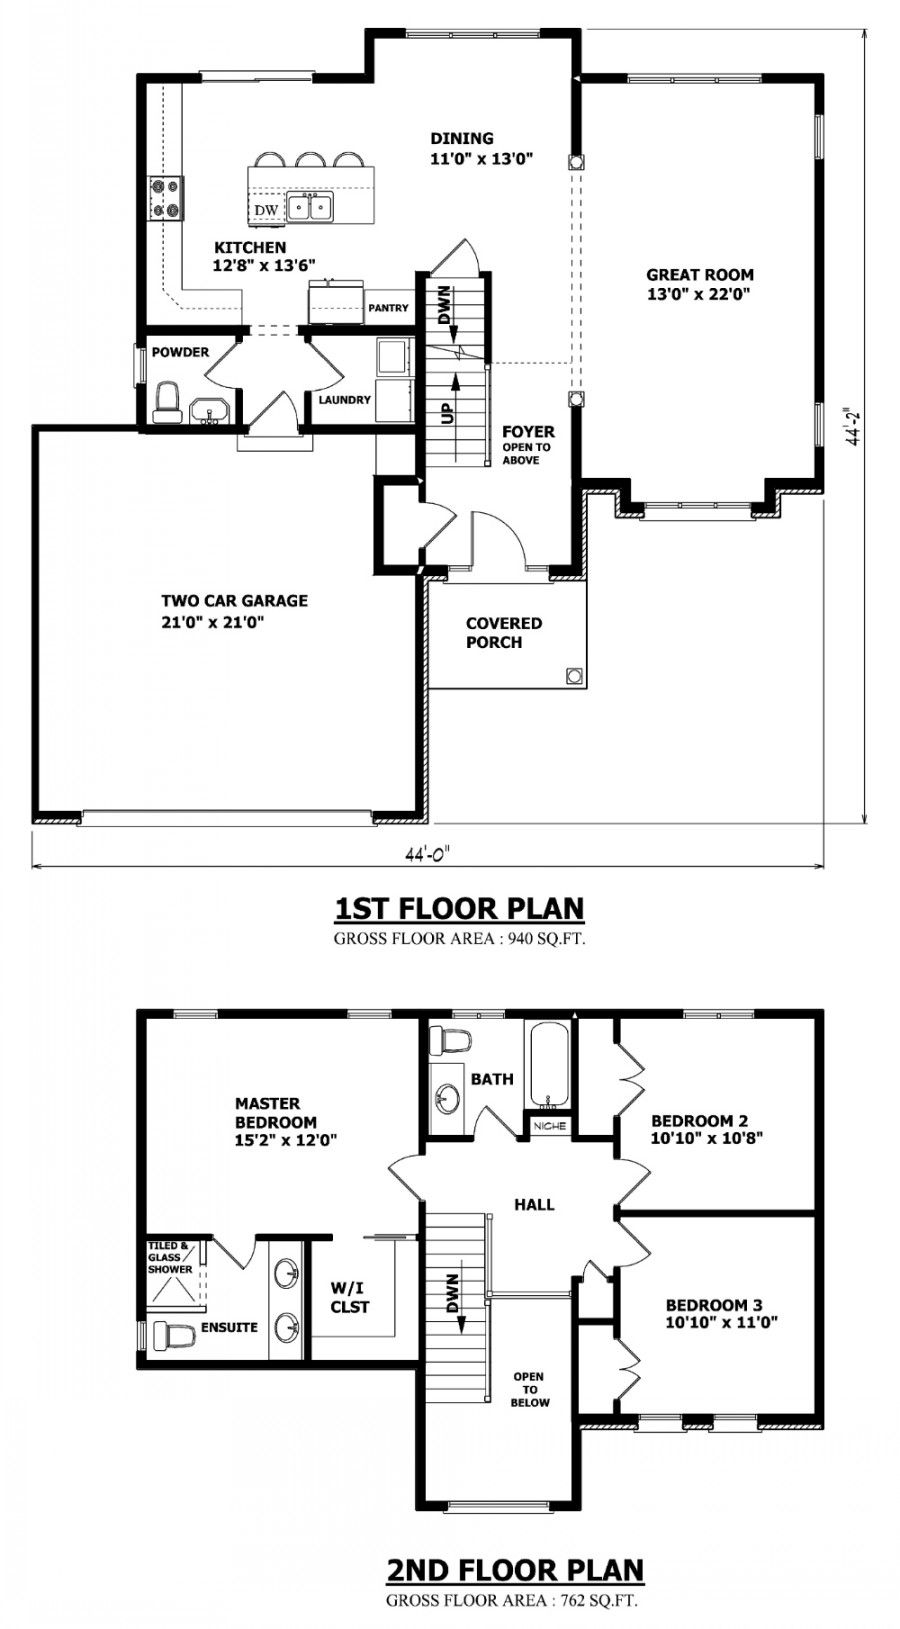 Laundry And Powder Replaced With Pantry Library And Office Off The Great Room Laundry Two Storey House Plans Double Storey House Plans Two Story House Plans